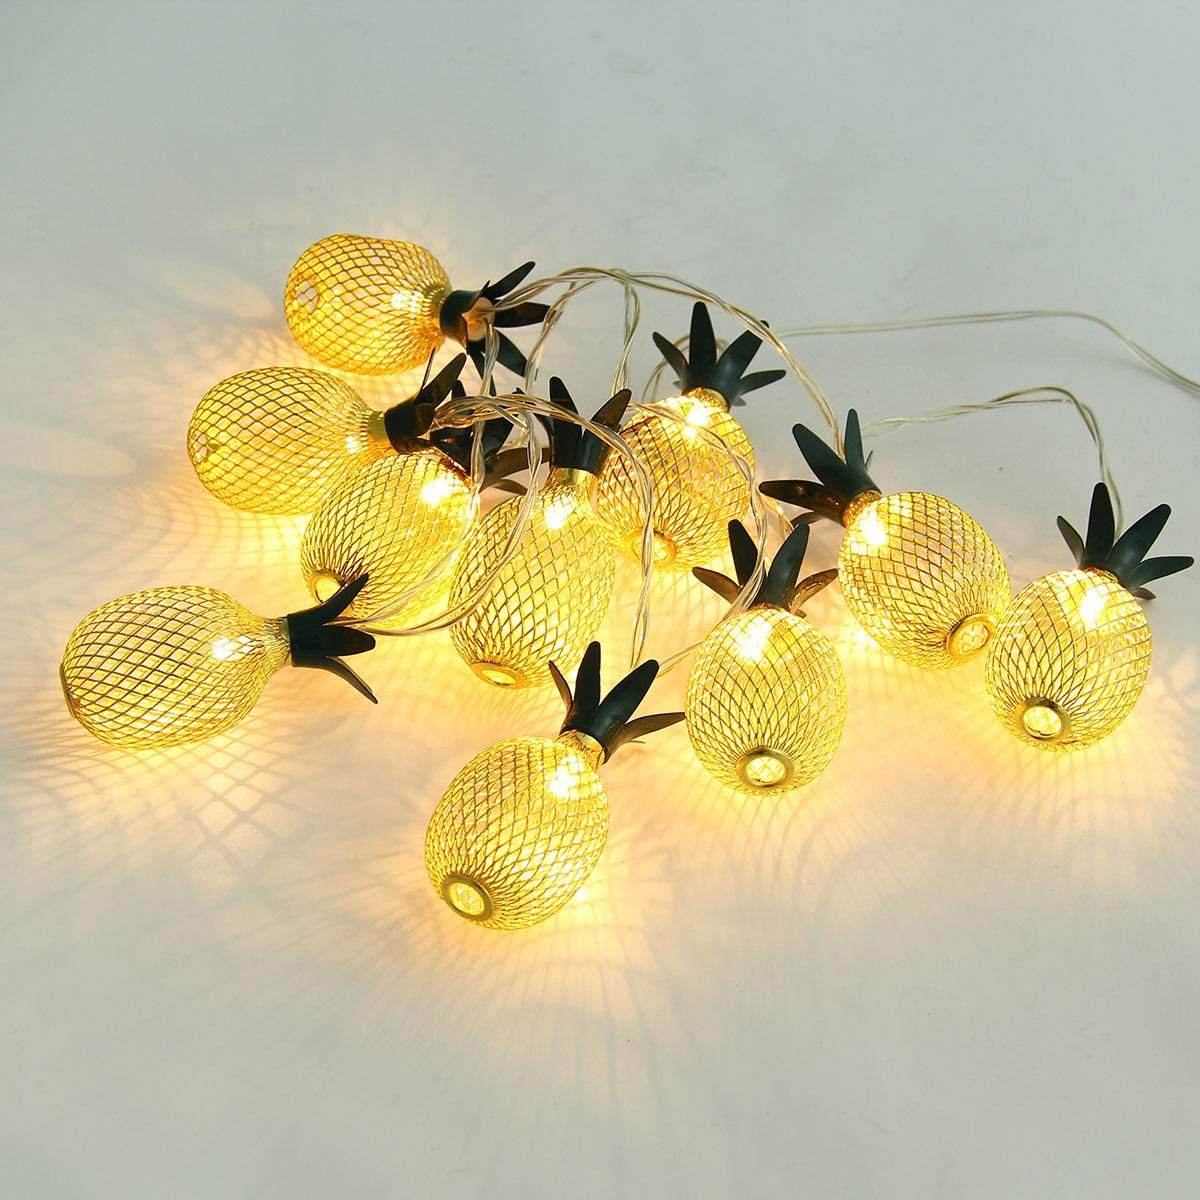 Pineapple String Lights, 200in/5m 40 LED Bulbs WaterproofSolar ChargingLantern String Lights with 2 Light Mode Fairy Lights for Wedding Garden Festival Party Halloween Christmas Indoor & Outdoor by Umiwe (Image #5)